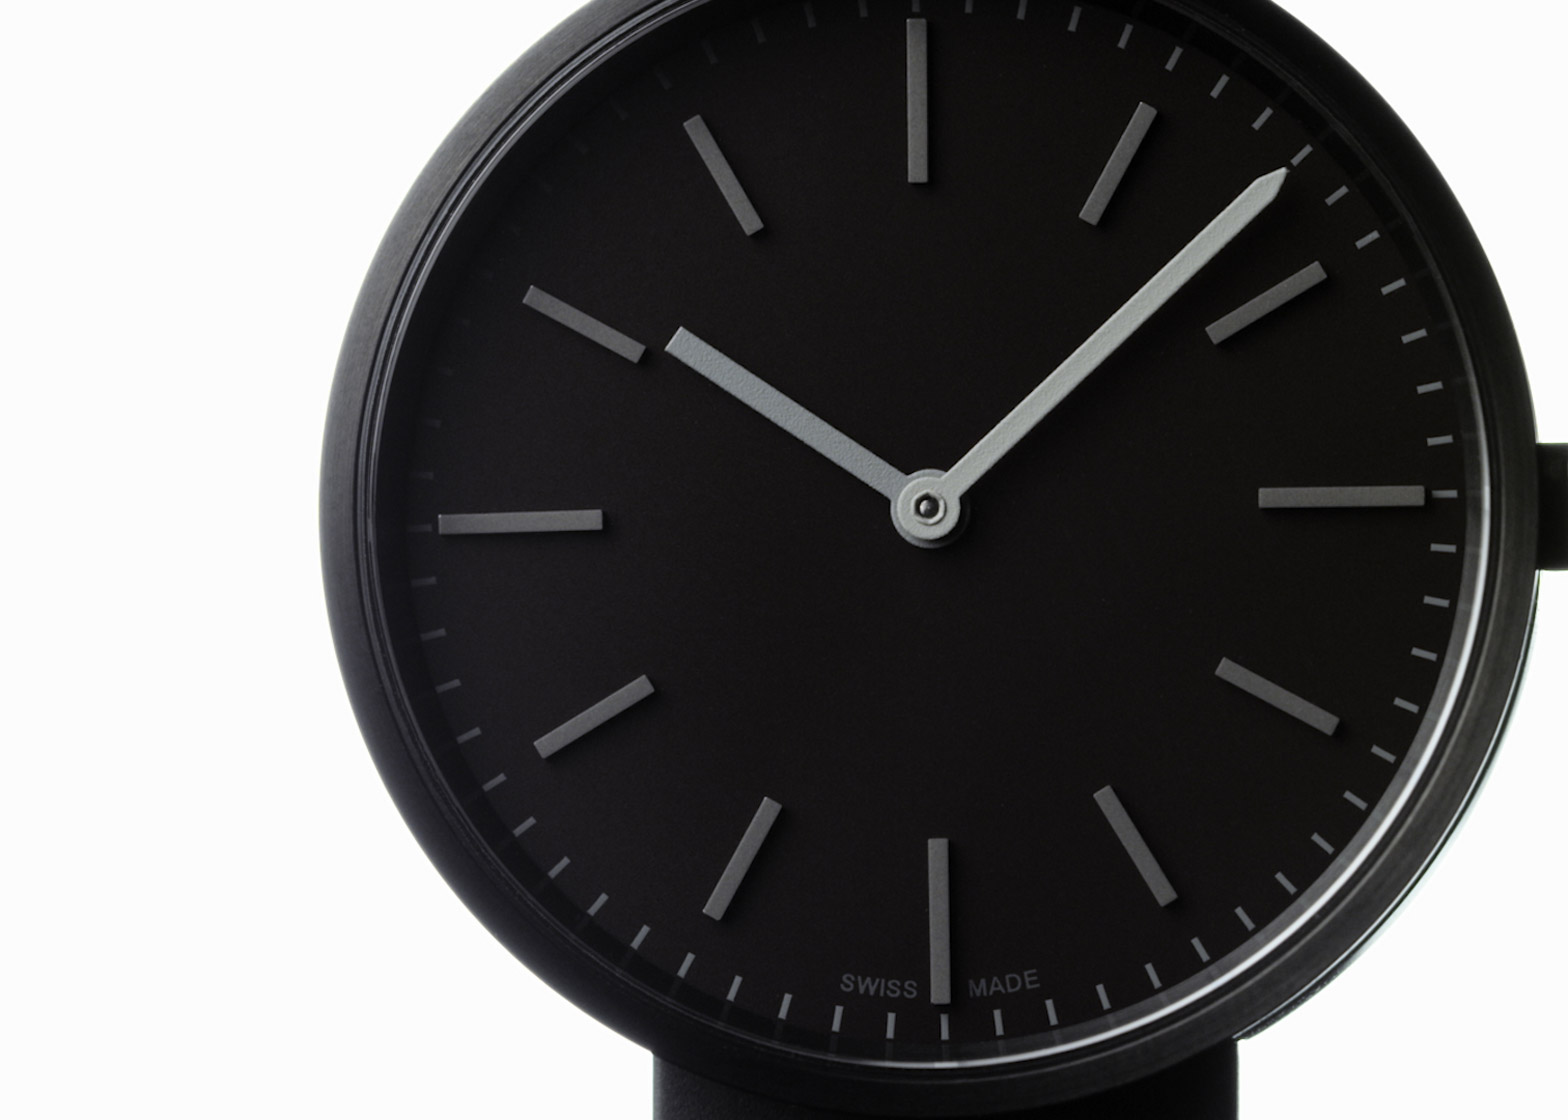 Watch by Uniform Wares